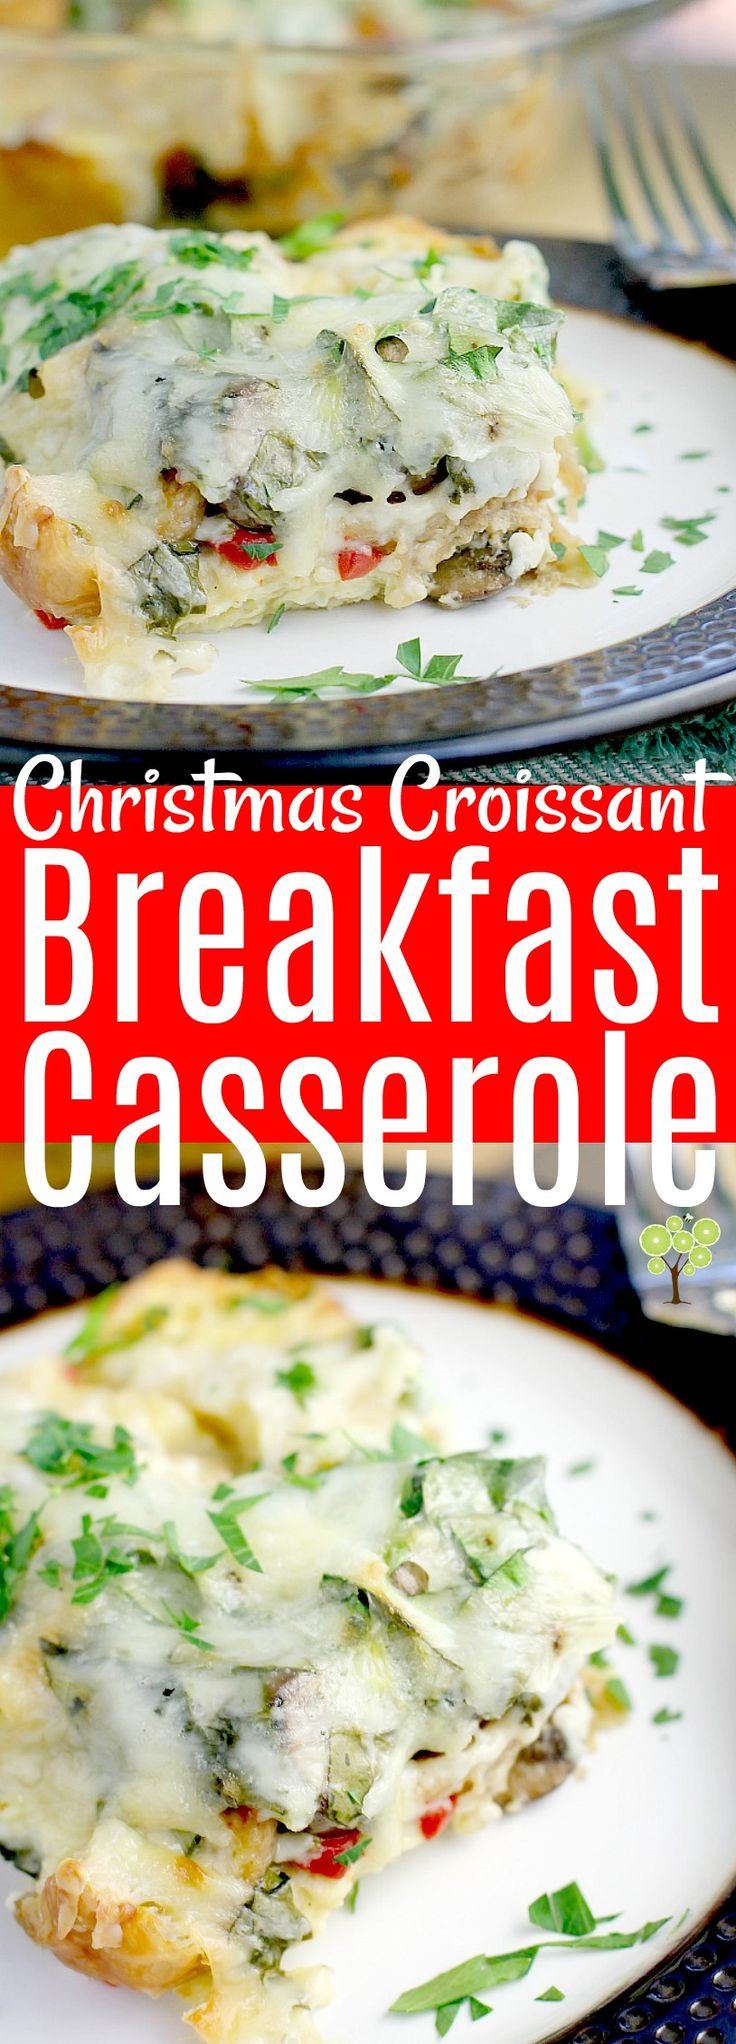 Christmas Croissant Breakfast Casserole! This creamy, cheesy, egg-y vegetarian recipe is assembled the night before, so all you have to do is bake in the morning. #recipe #breakfast #casserole #vegetarian #christmas #croissant #family #holiday